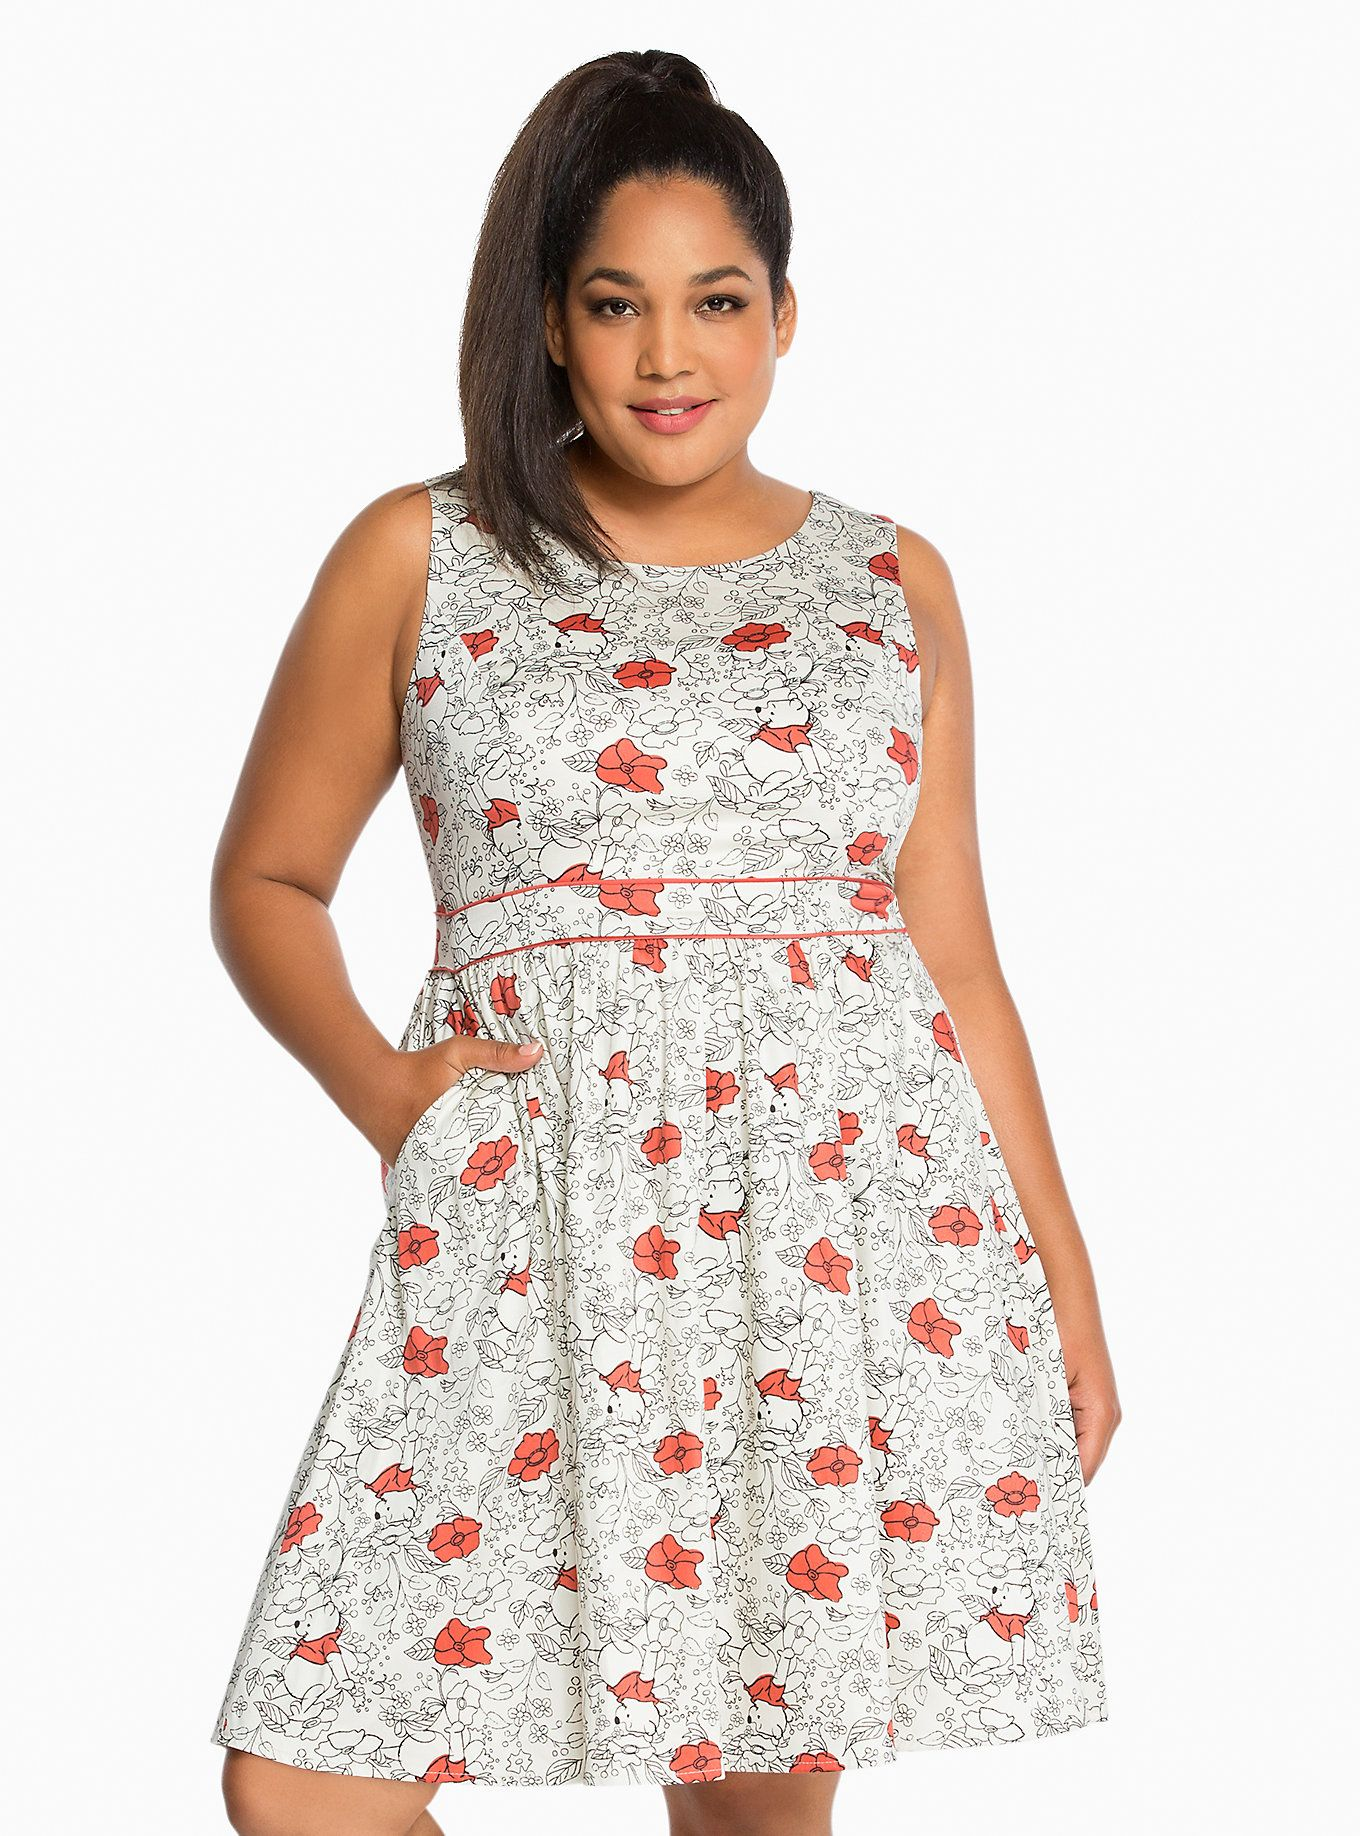 929341f71b64 <p>The cutest dress you'll find this side of the Hundred Acre Wood! The  skater style is adorable with a red and white Winnie the Pooh floral print.